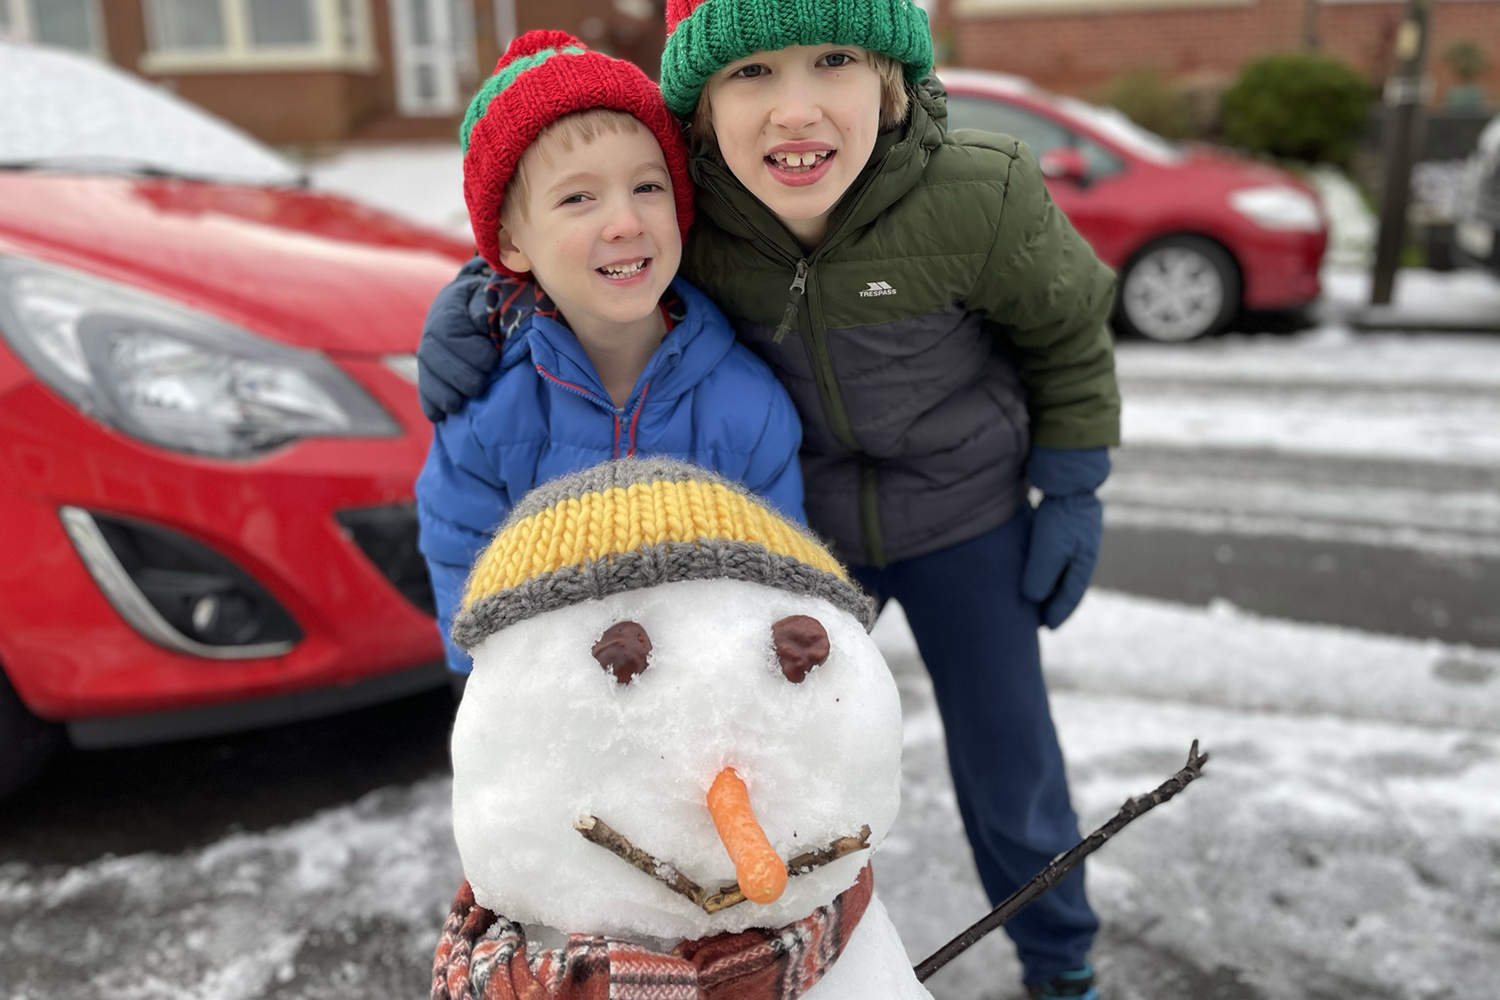 Toby and Gabe posing with their snowman